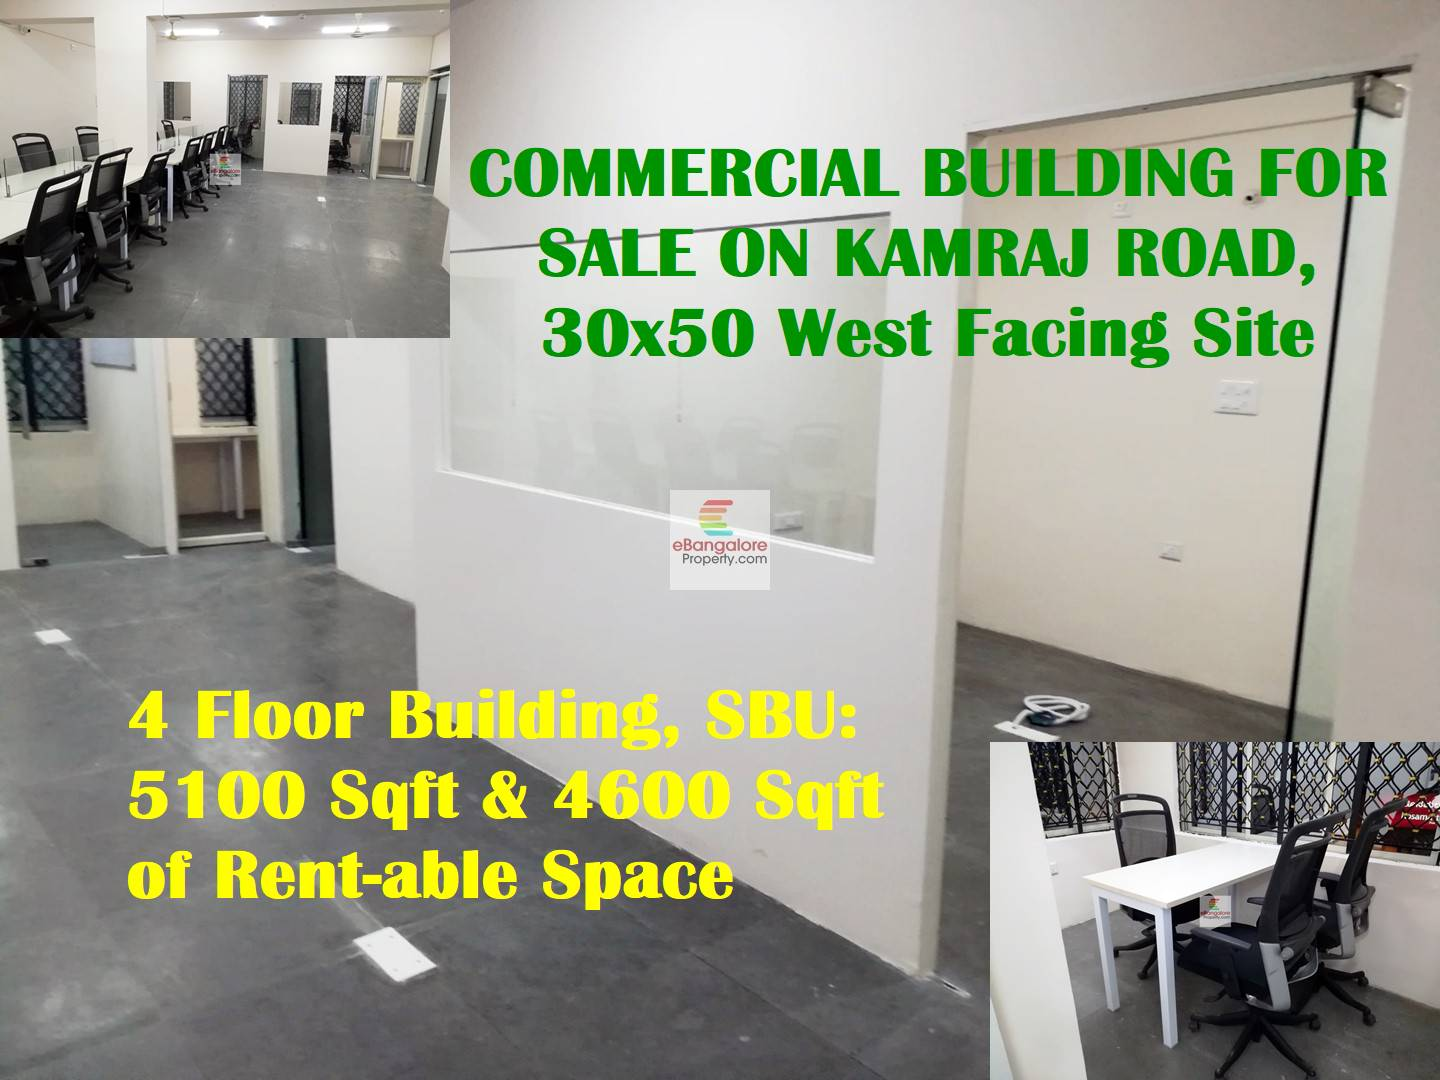 Kamraj Road – Commercial Building for Sale on 30×50 Plot – 4600 Sqft of Rentable Space